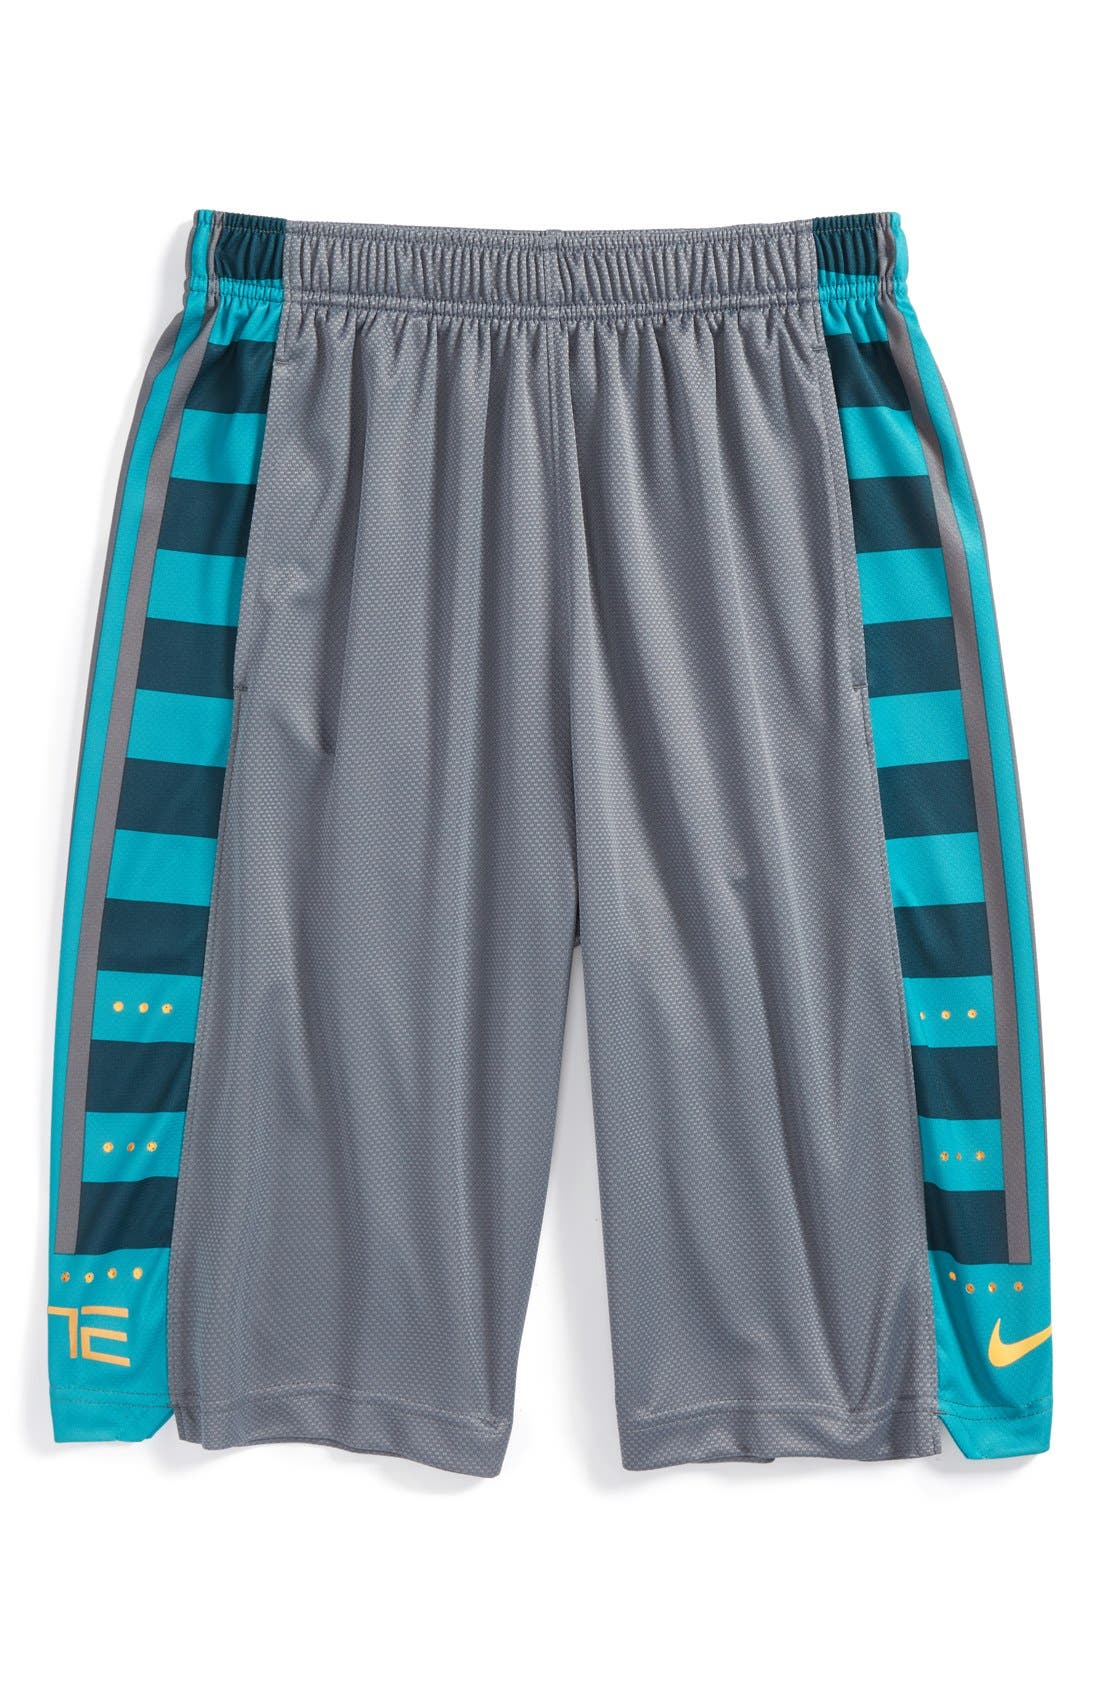 Main Image - Nike 'Fanatical' Dri-FIT Mesh Shorts (Big Boys)